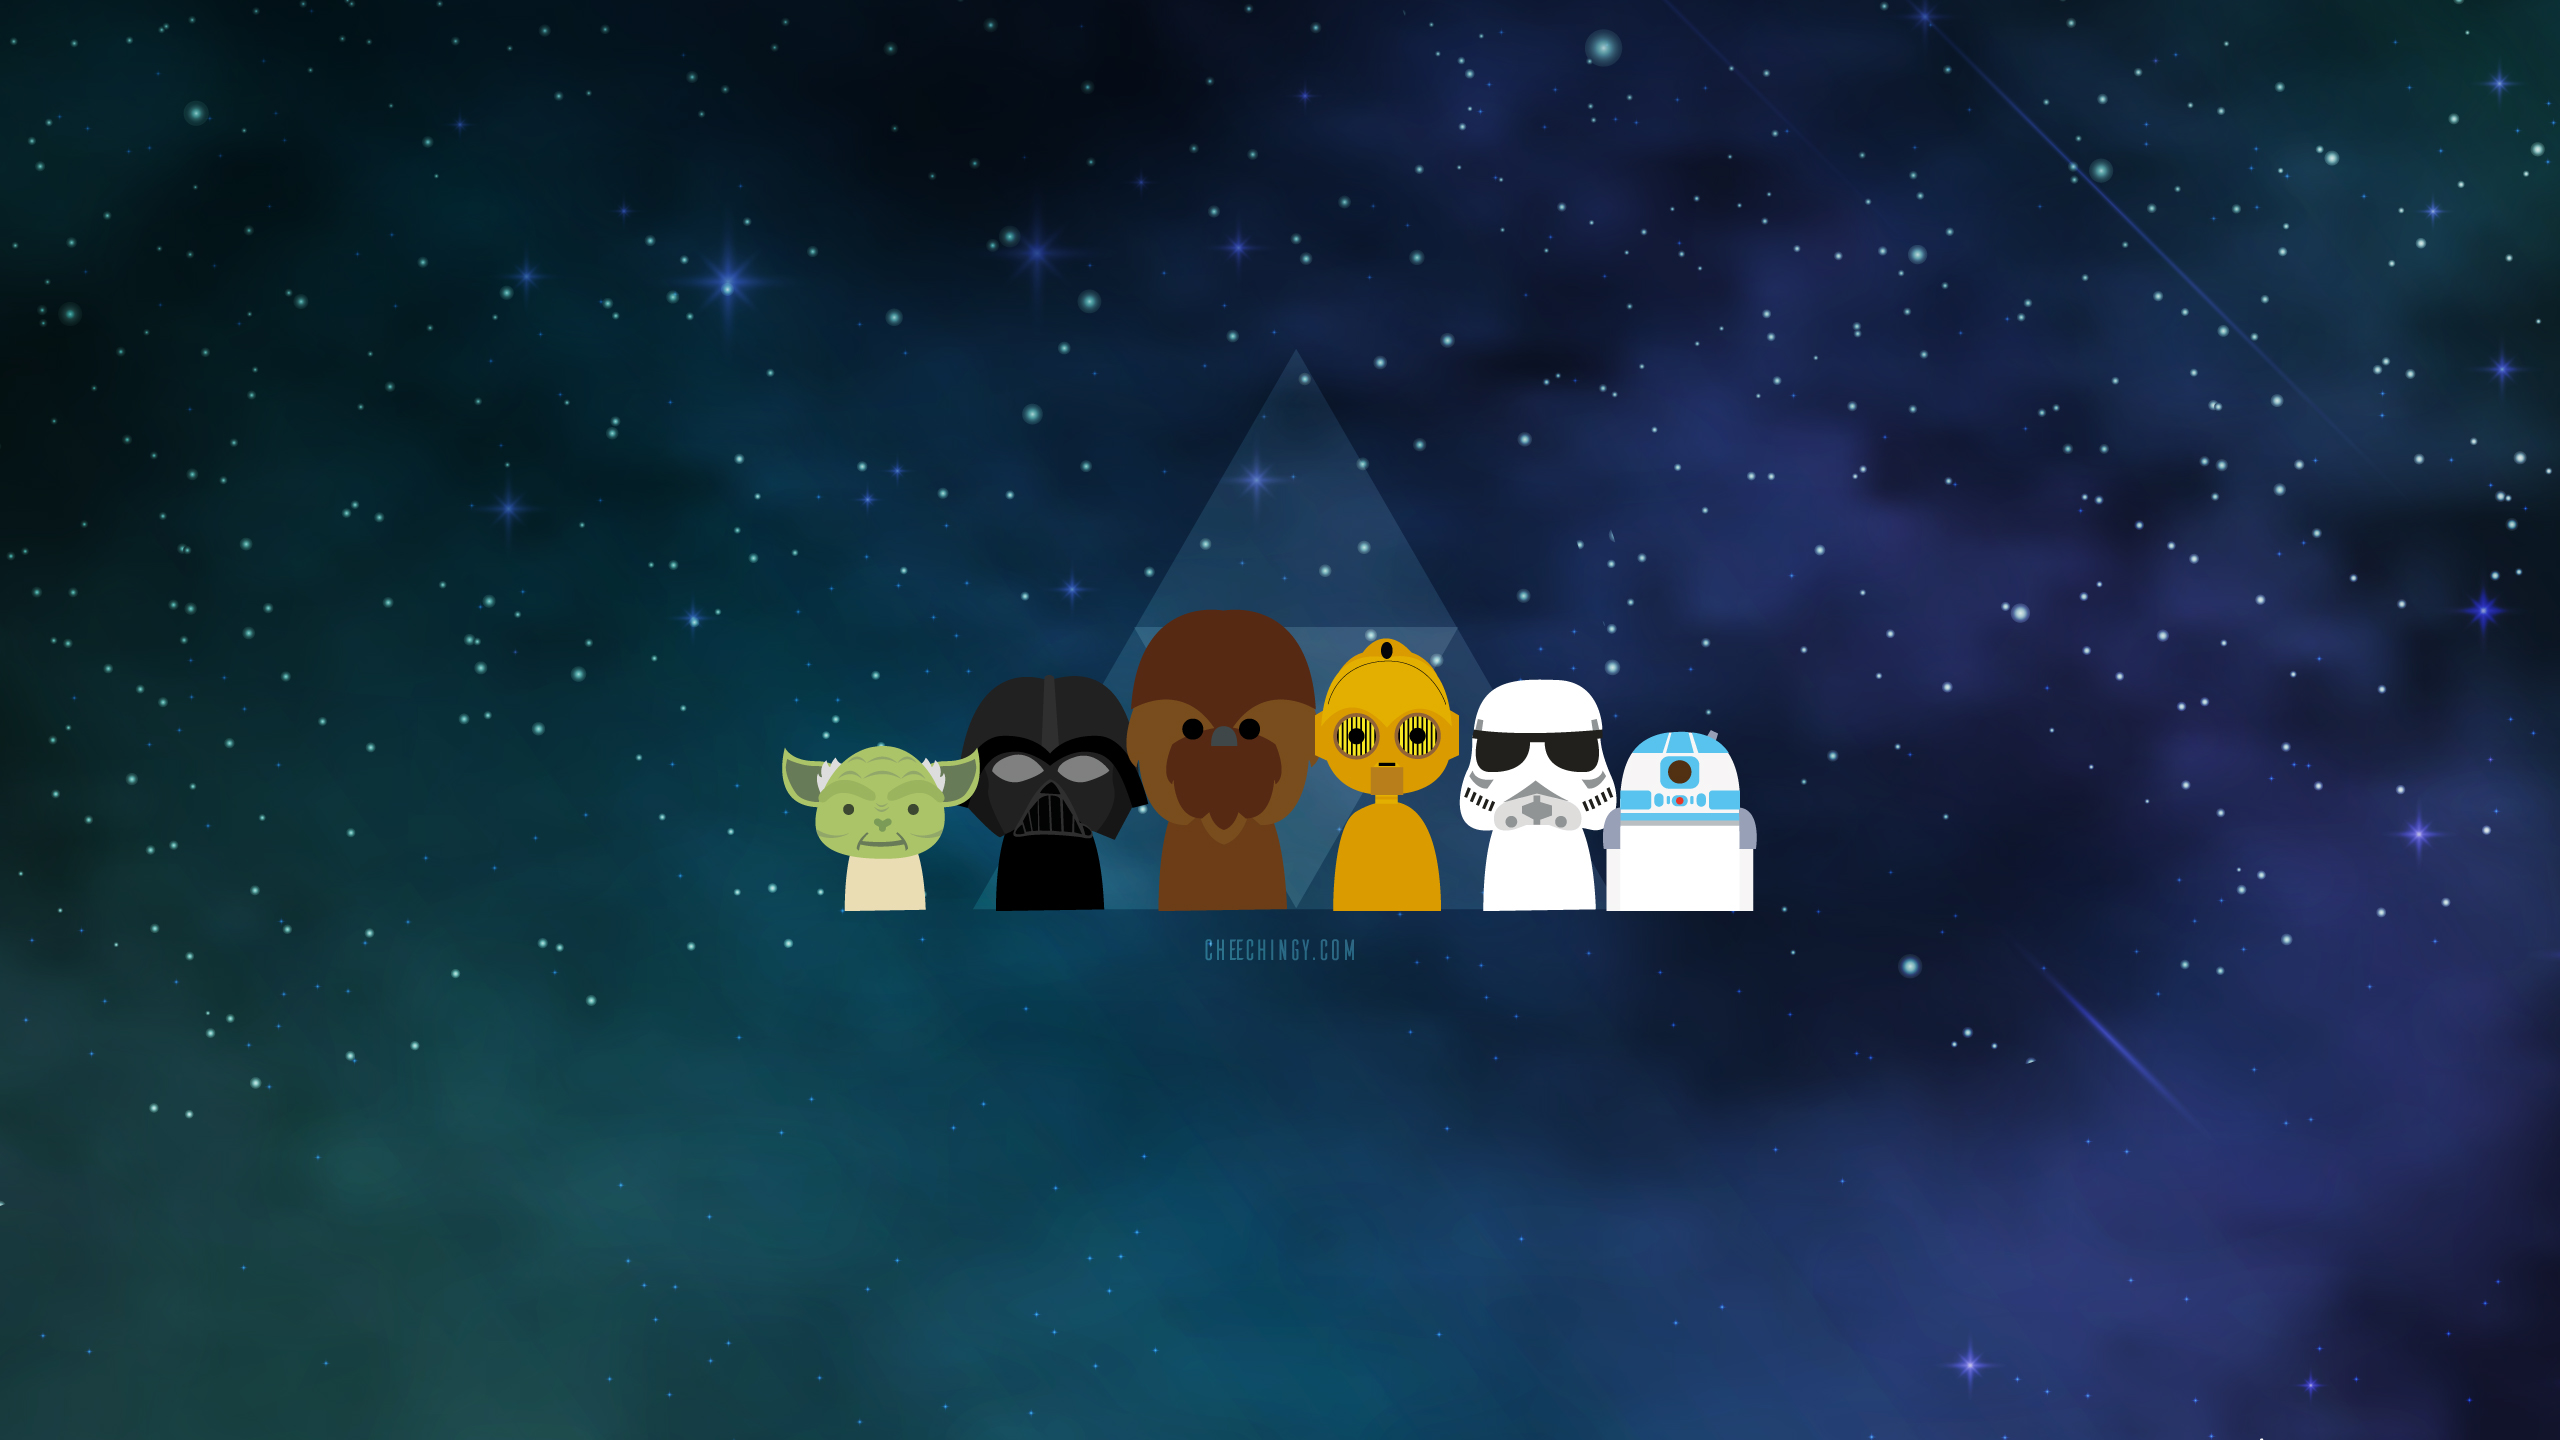 Star Wars Cartoon Backgrounds 2560x1440 Wallpaper Teahub Io